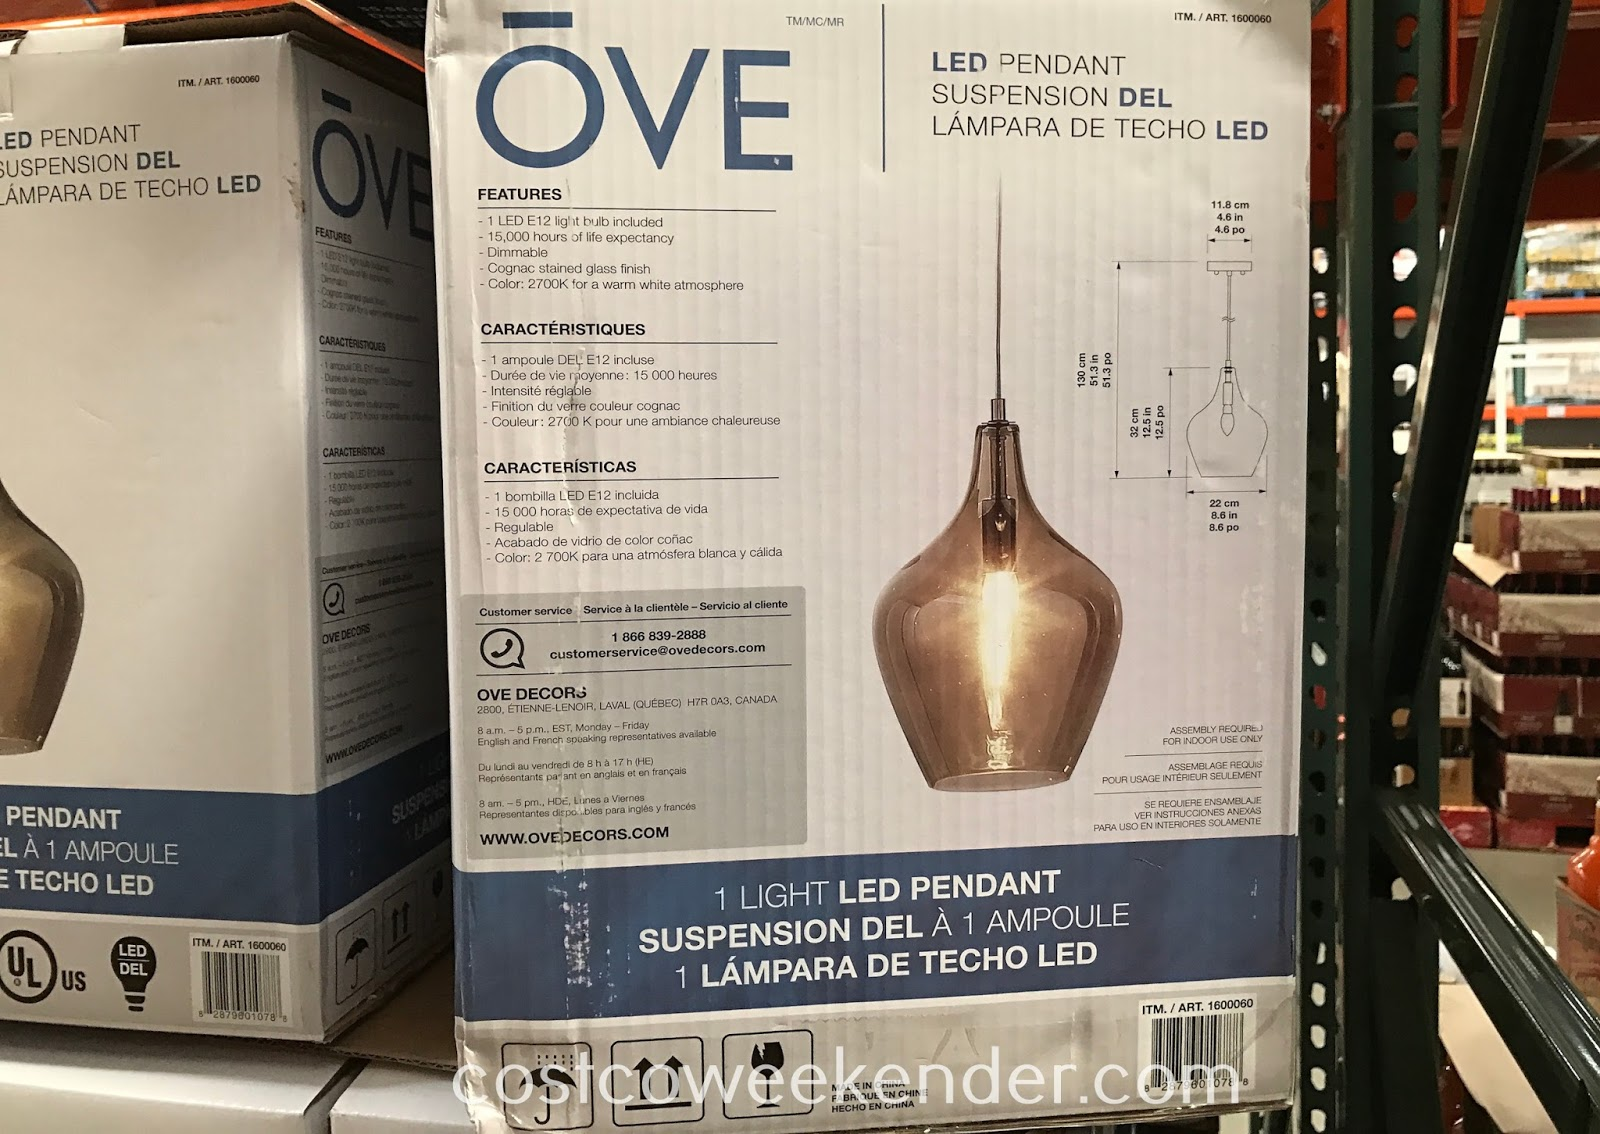 Costco 1600060 - Ove Decors LED Pendant Light: chic for a more modern look